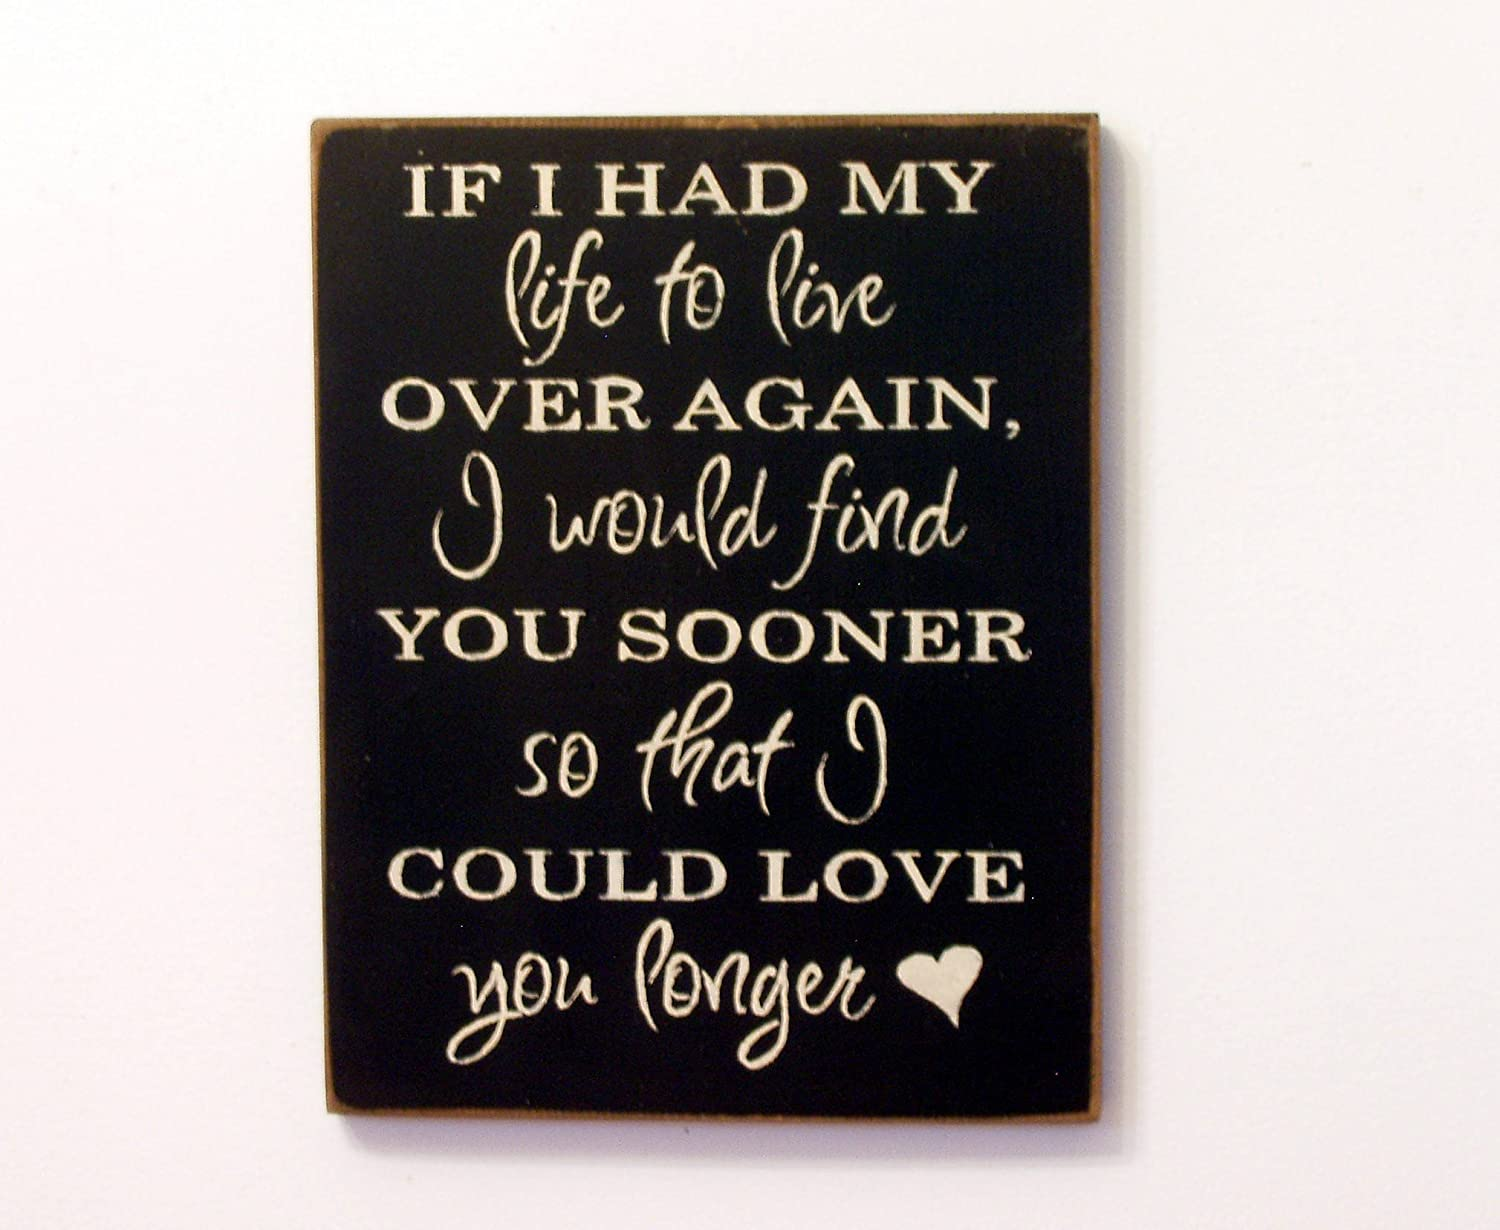 Metal Wall Sign If I Had My Life To Live Again Find You Sooner Love You Longer